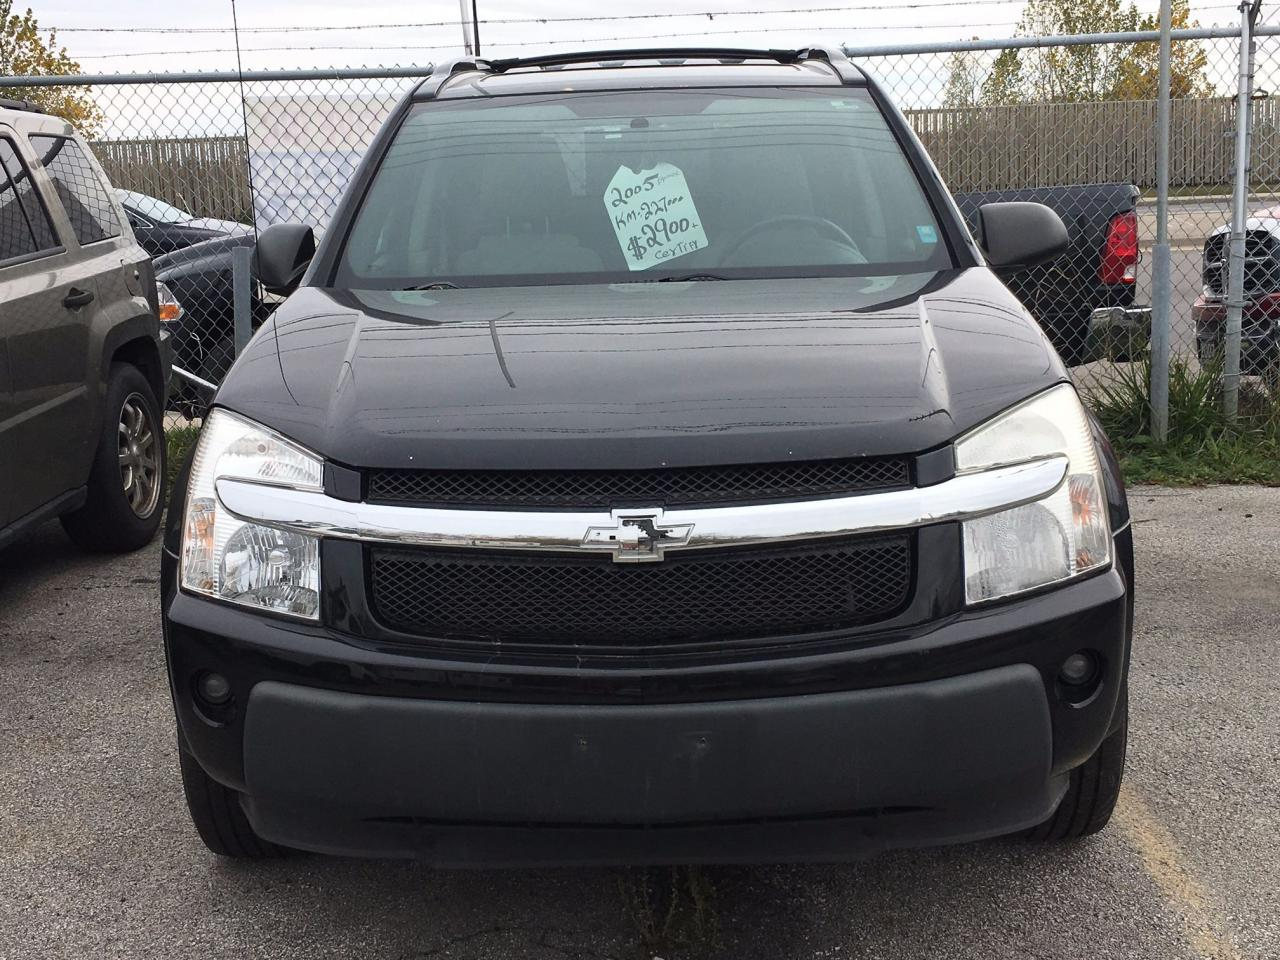 Equinox 2005 chevrolet equinox for sale : Used 2005 Chevrolet Equinox for Sale in Mississauga, Ontario ...